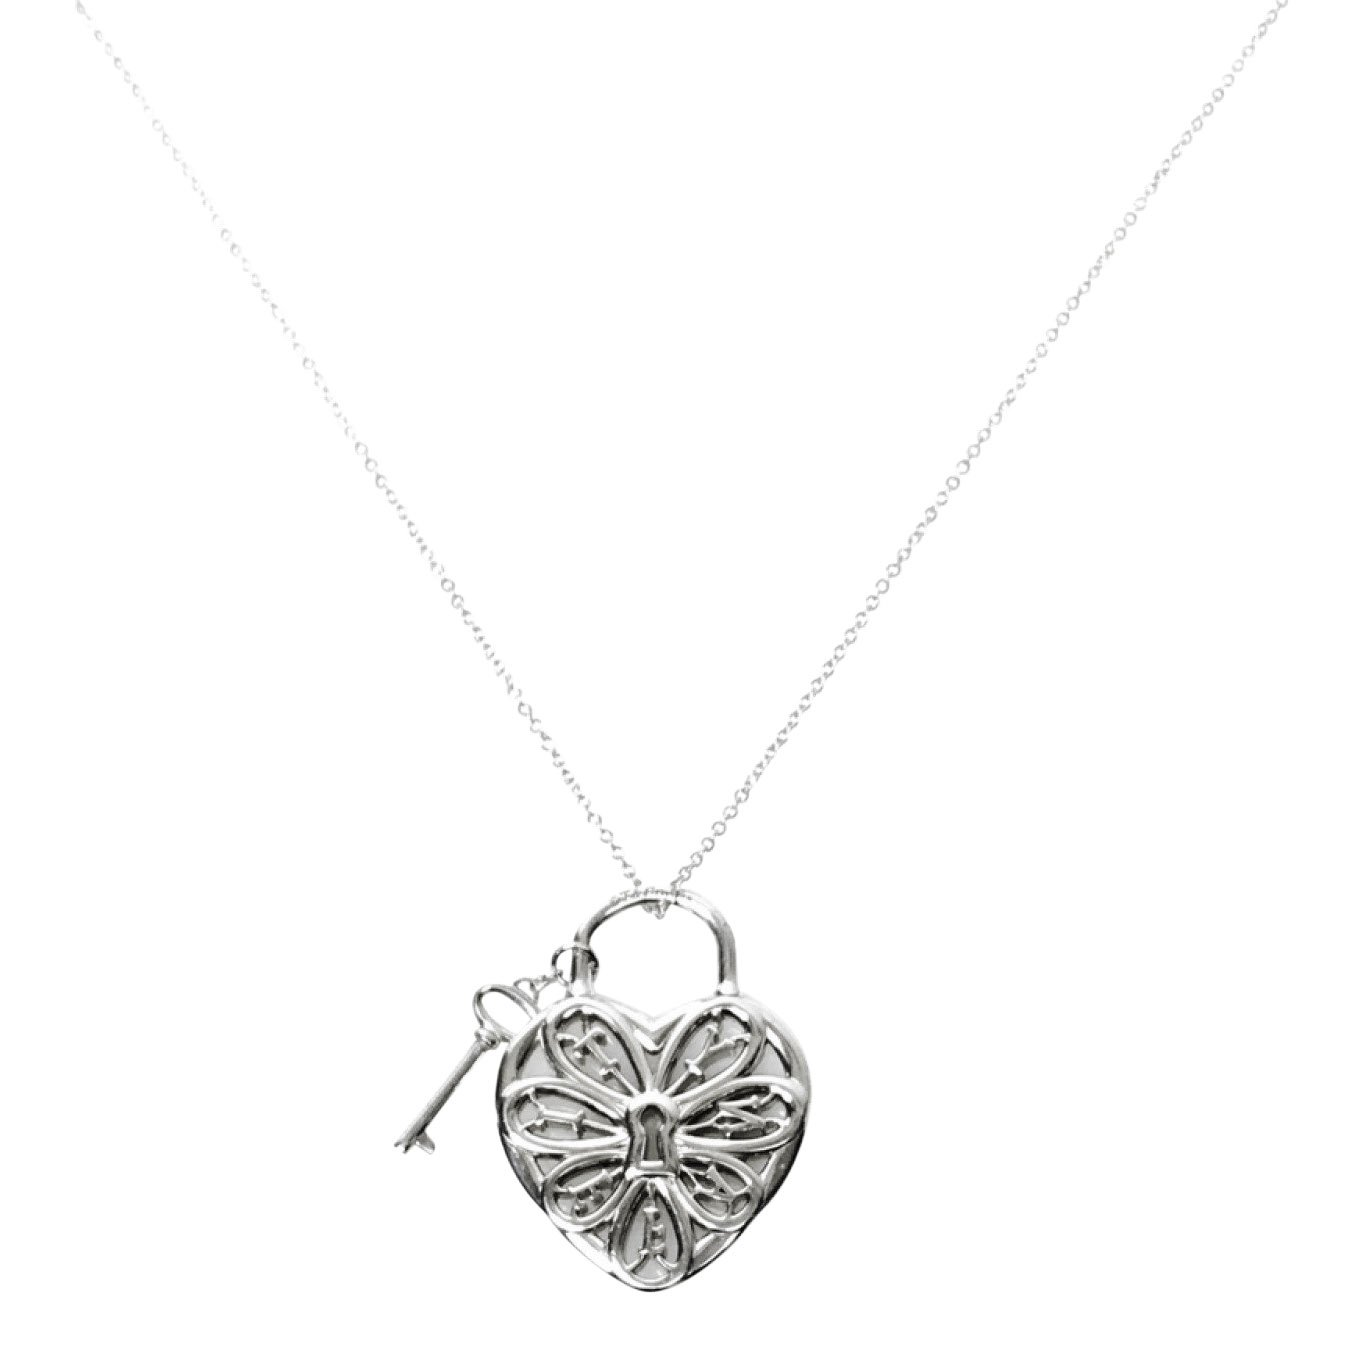 Tiffany co filigree heart pendant with key oliver jewellery tiffany co filigree heart pendant with key necklaces aloadofball Image collections